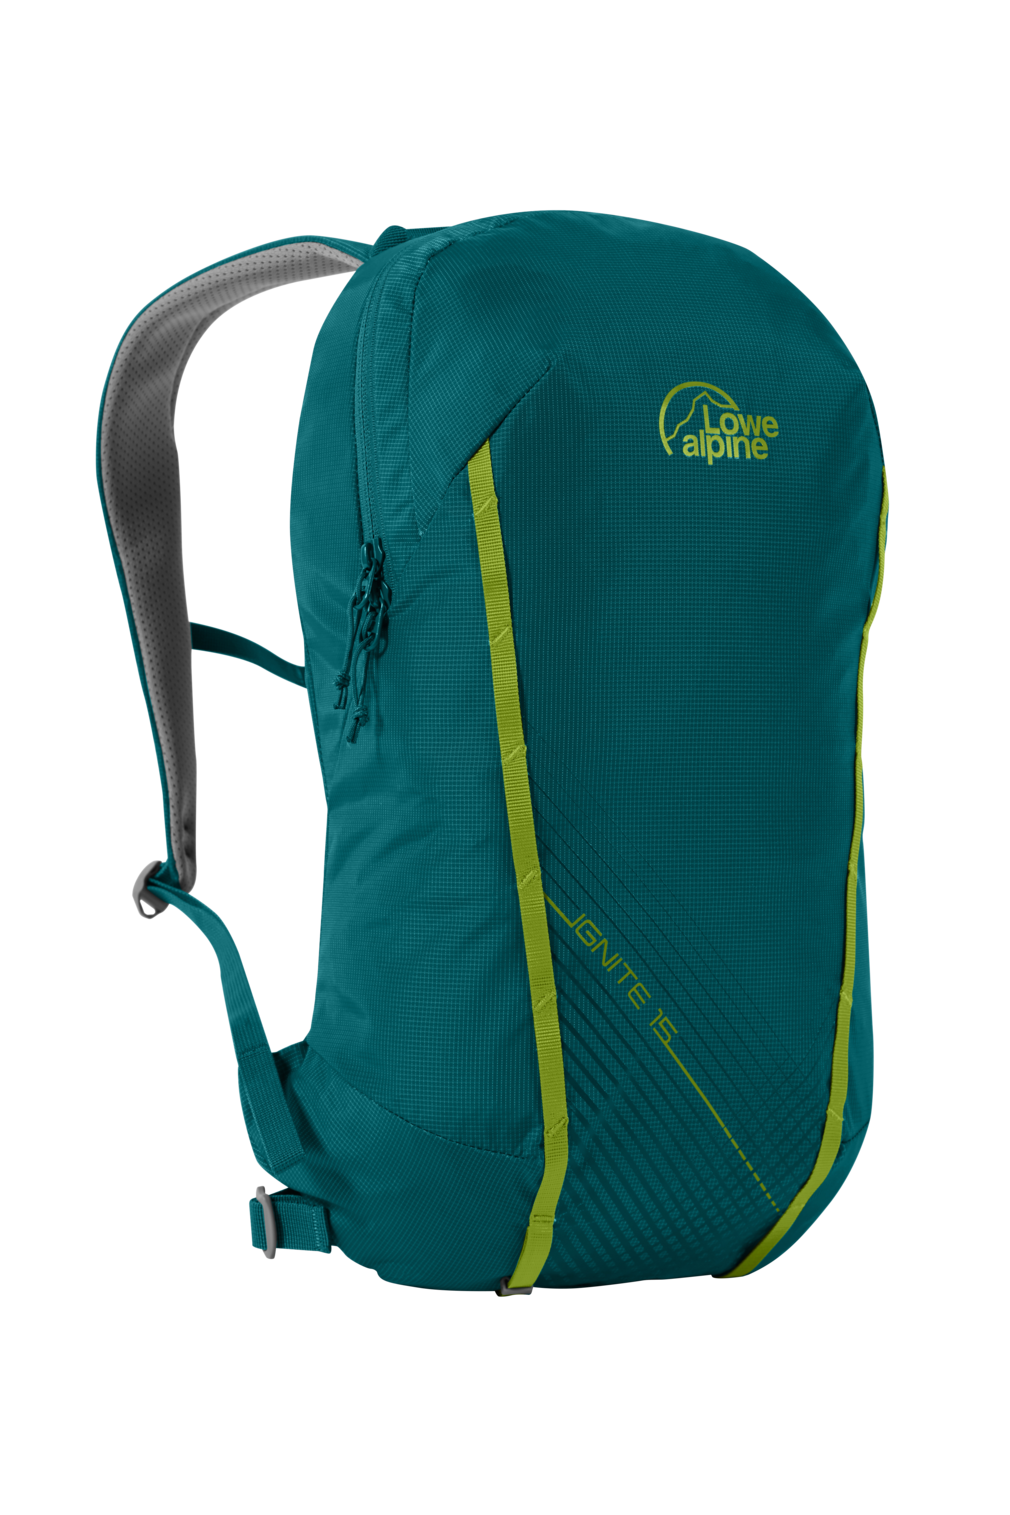 Lowe Alpine Ignite 15 - Trailblazer Outdoors, Pickering